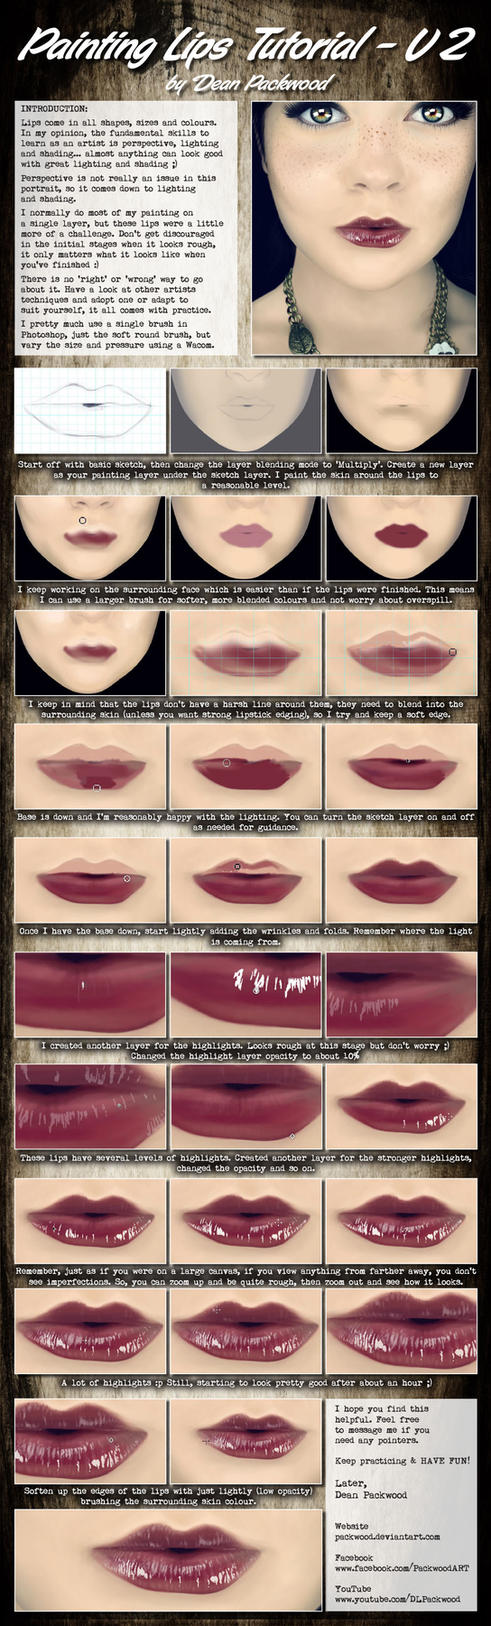 Lips Tutorial - V2 by Packwood